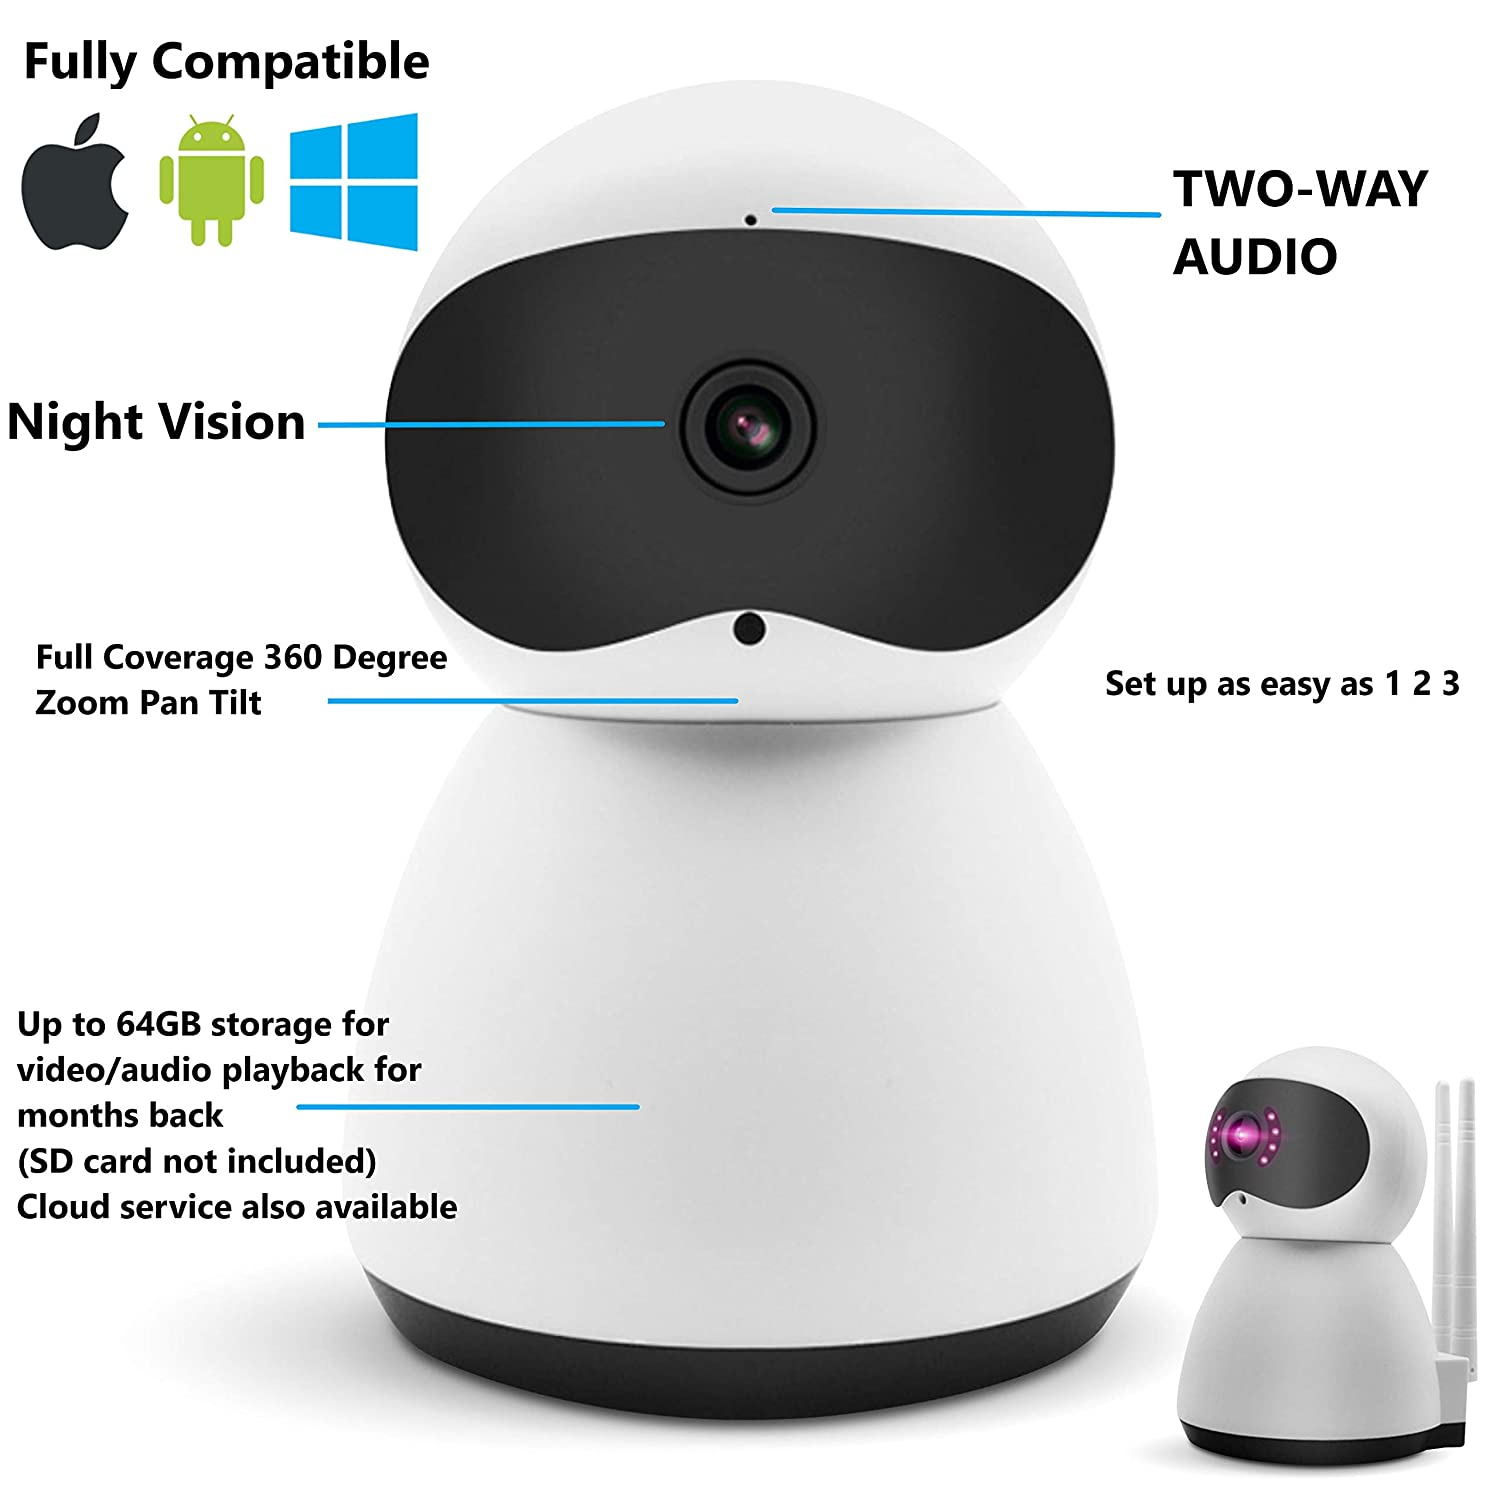 Smart WiFi Camera 1080P High Definition Wireless Home Business Security Surveillance Cam Recorder – Pet Baby Nanny Elder Monitor, 360 Degree, Night Vision, Two-Way Audio, Motion Sound Detection